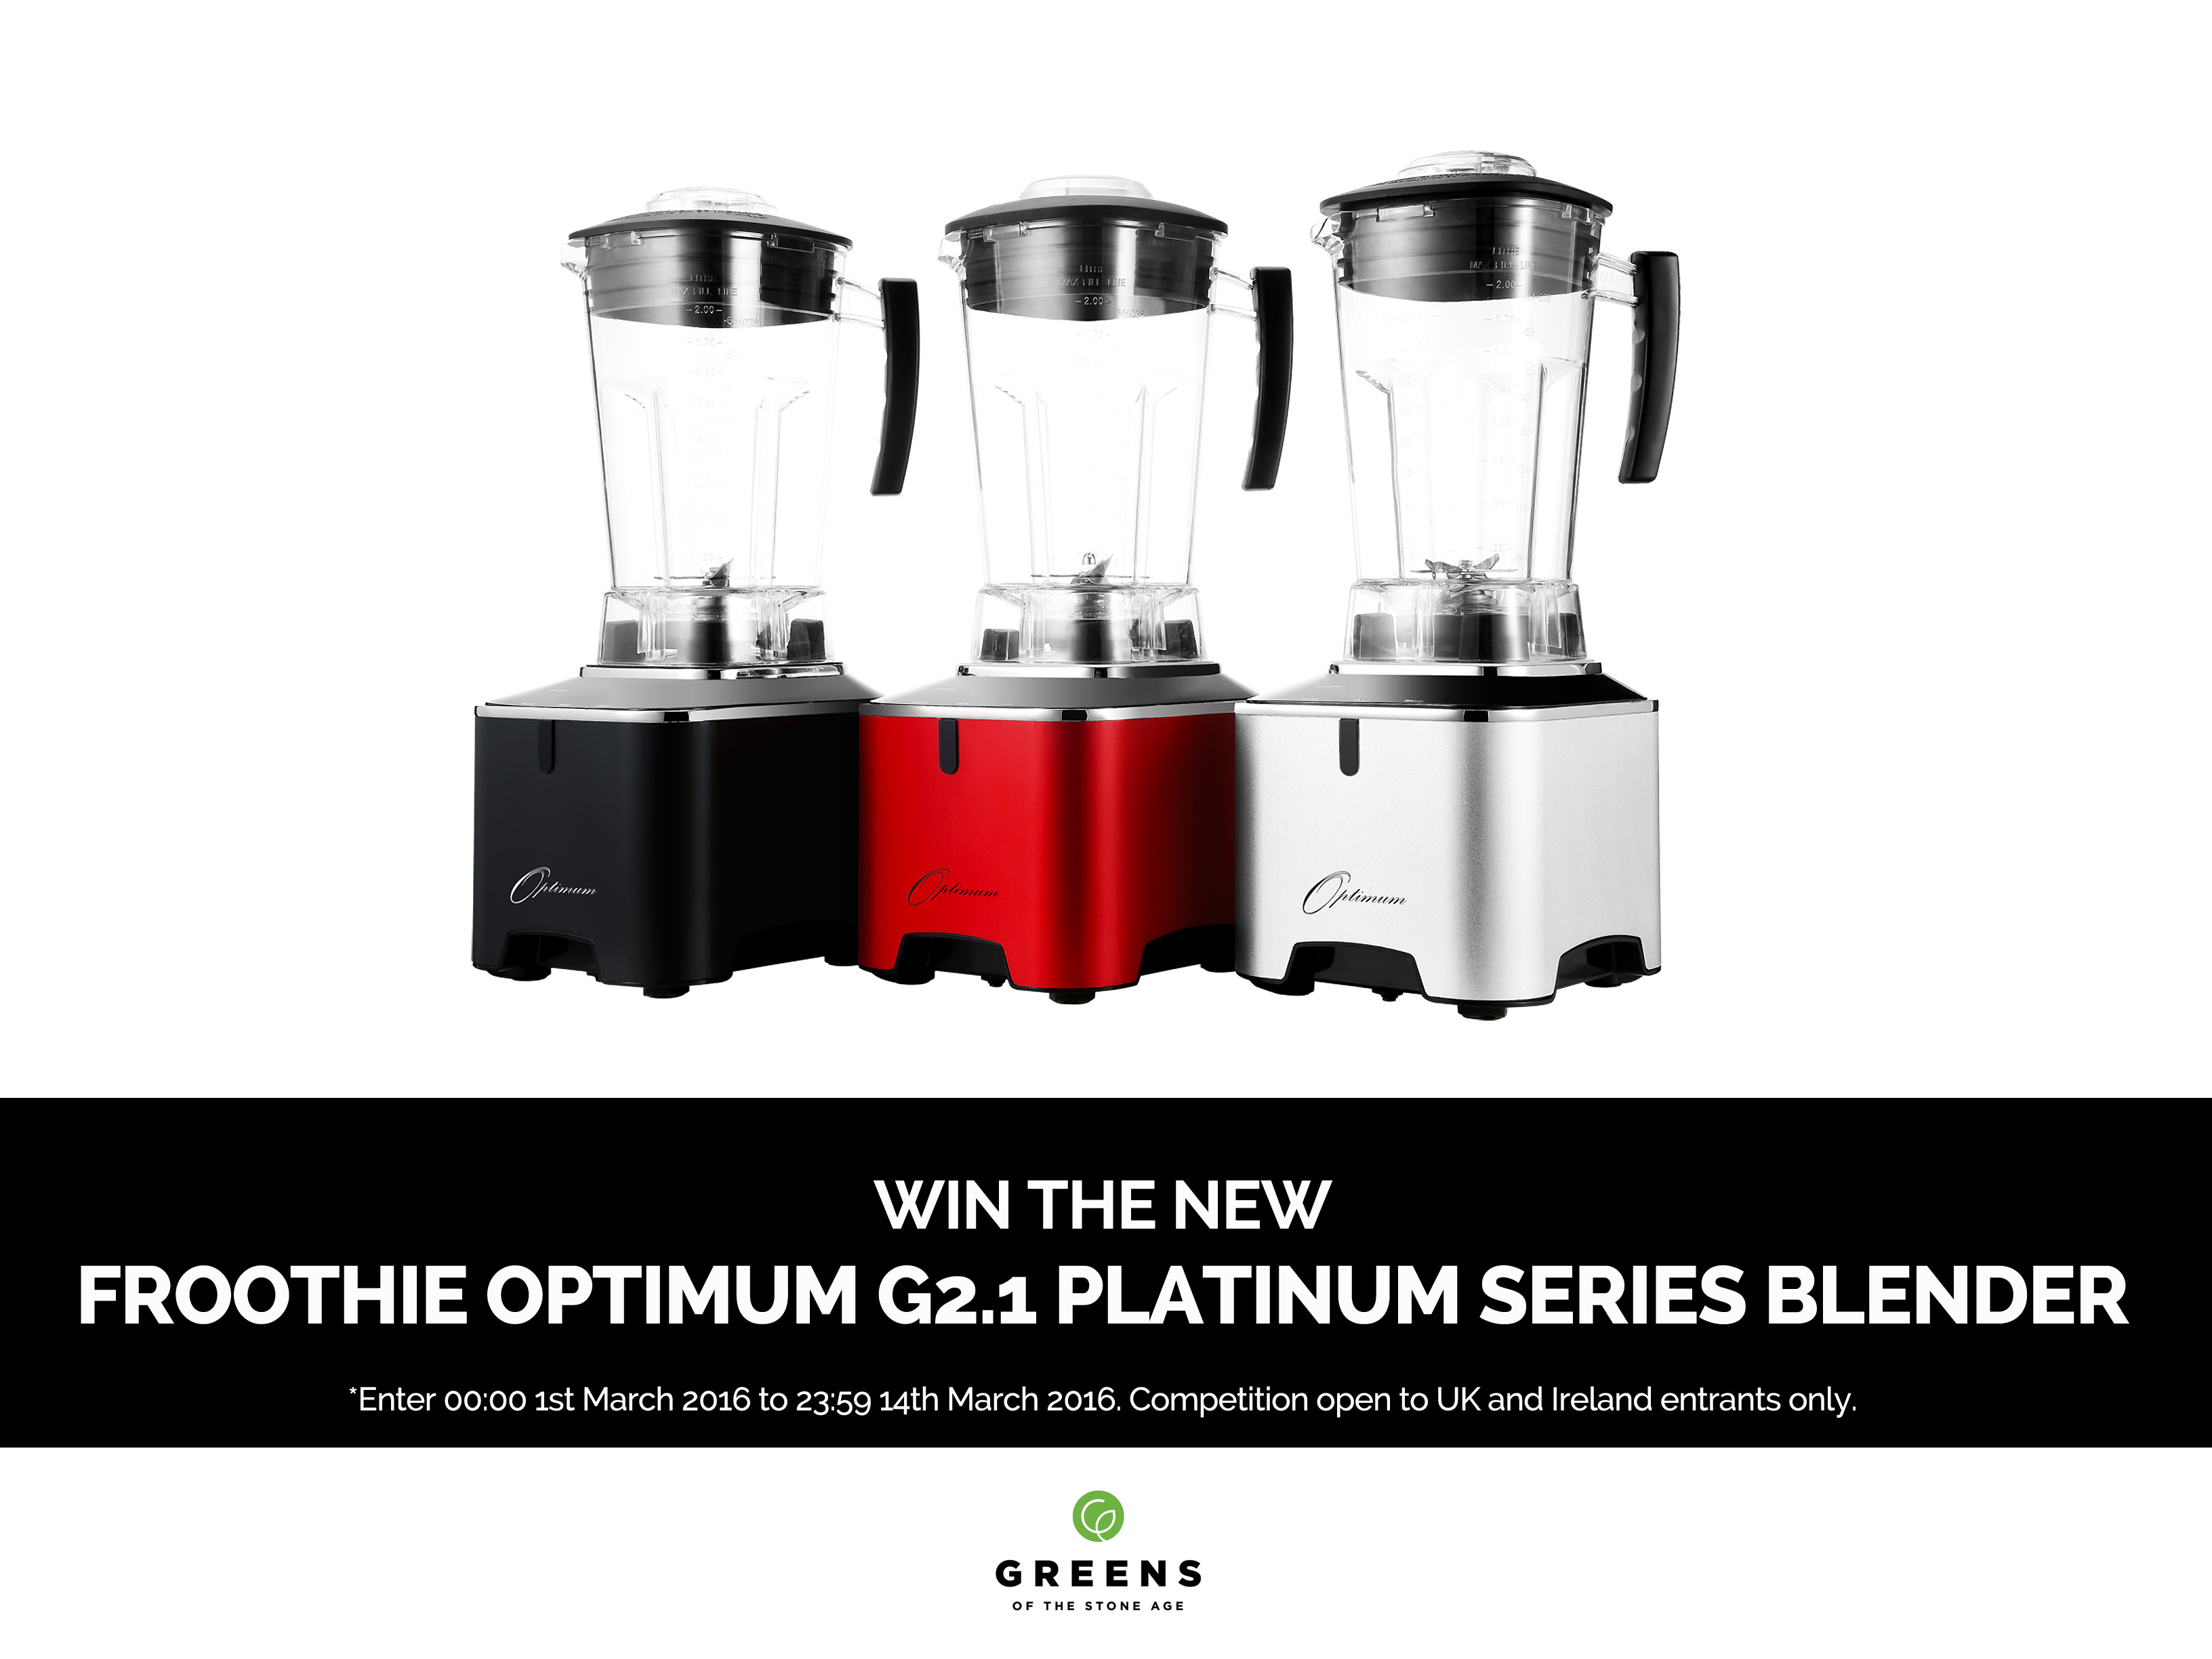 A picture of the colour range of the Froothie Optimum G2.1 Platinum Series Blender